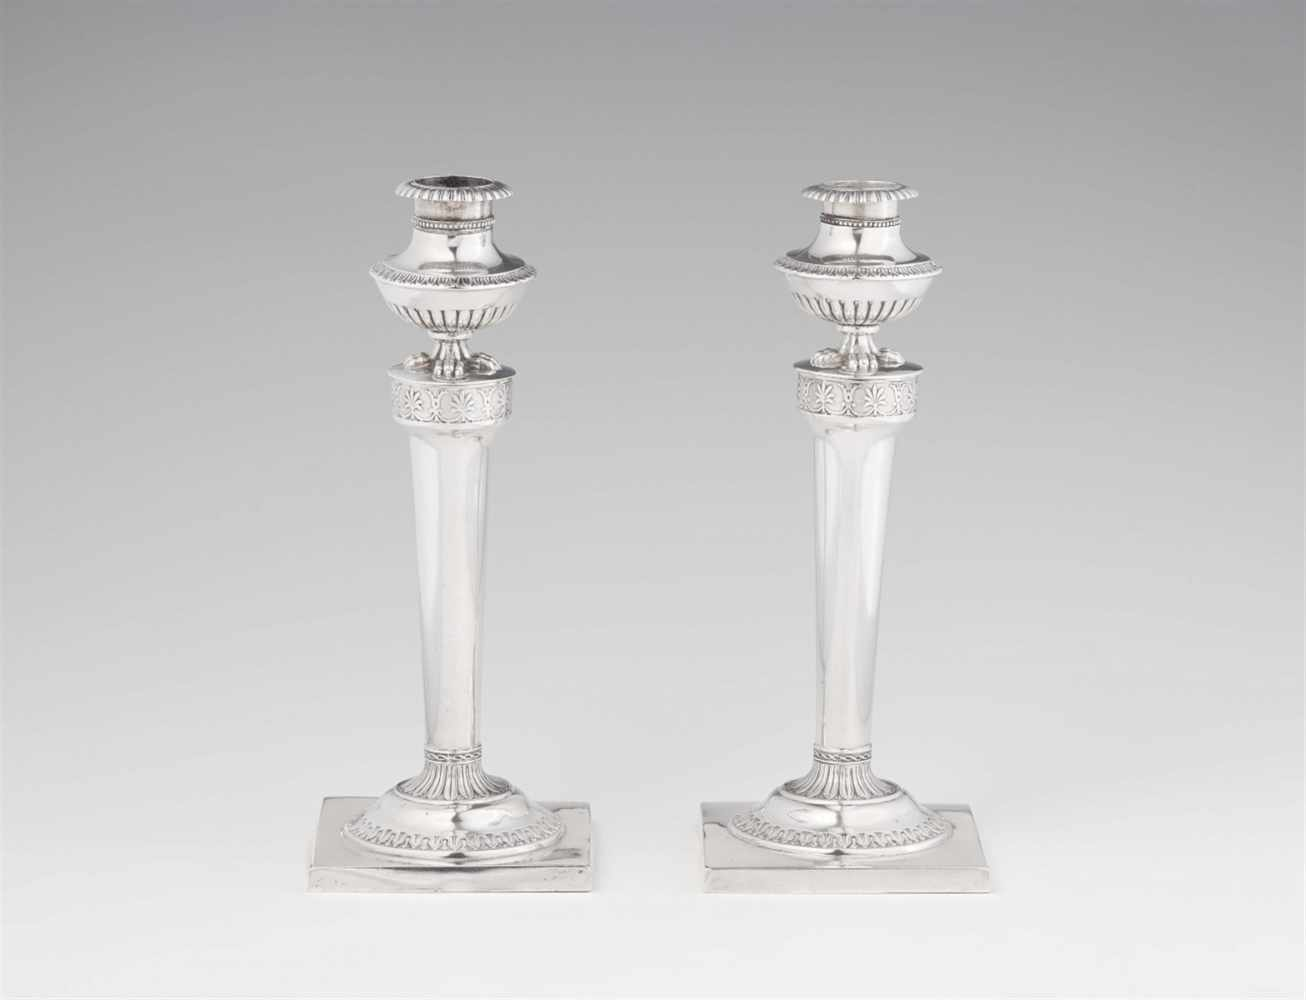 Lot 350 - A pair of Hannover silver candlesticksSlightly tapering shafts on square plinths. H 20 cm, weight